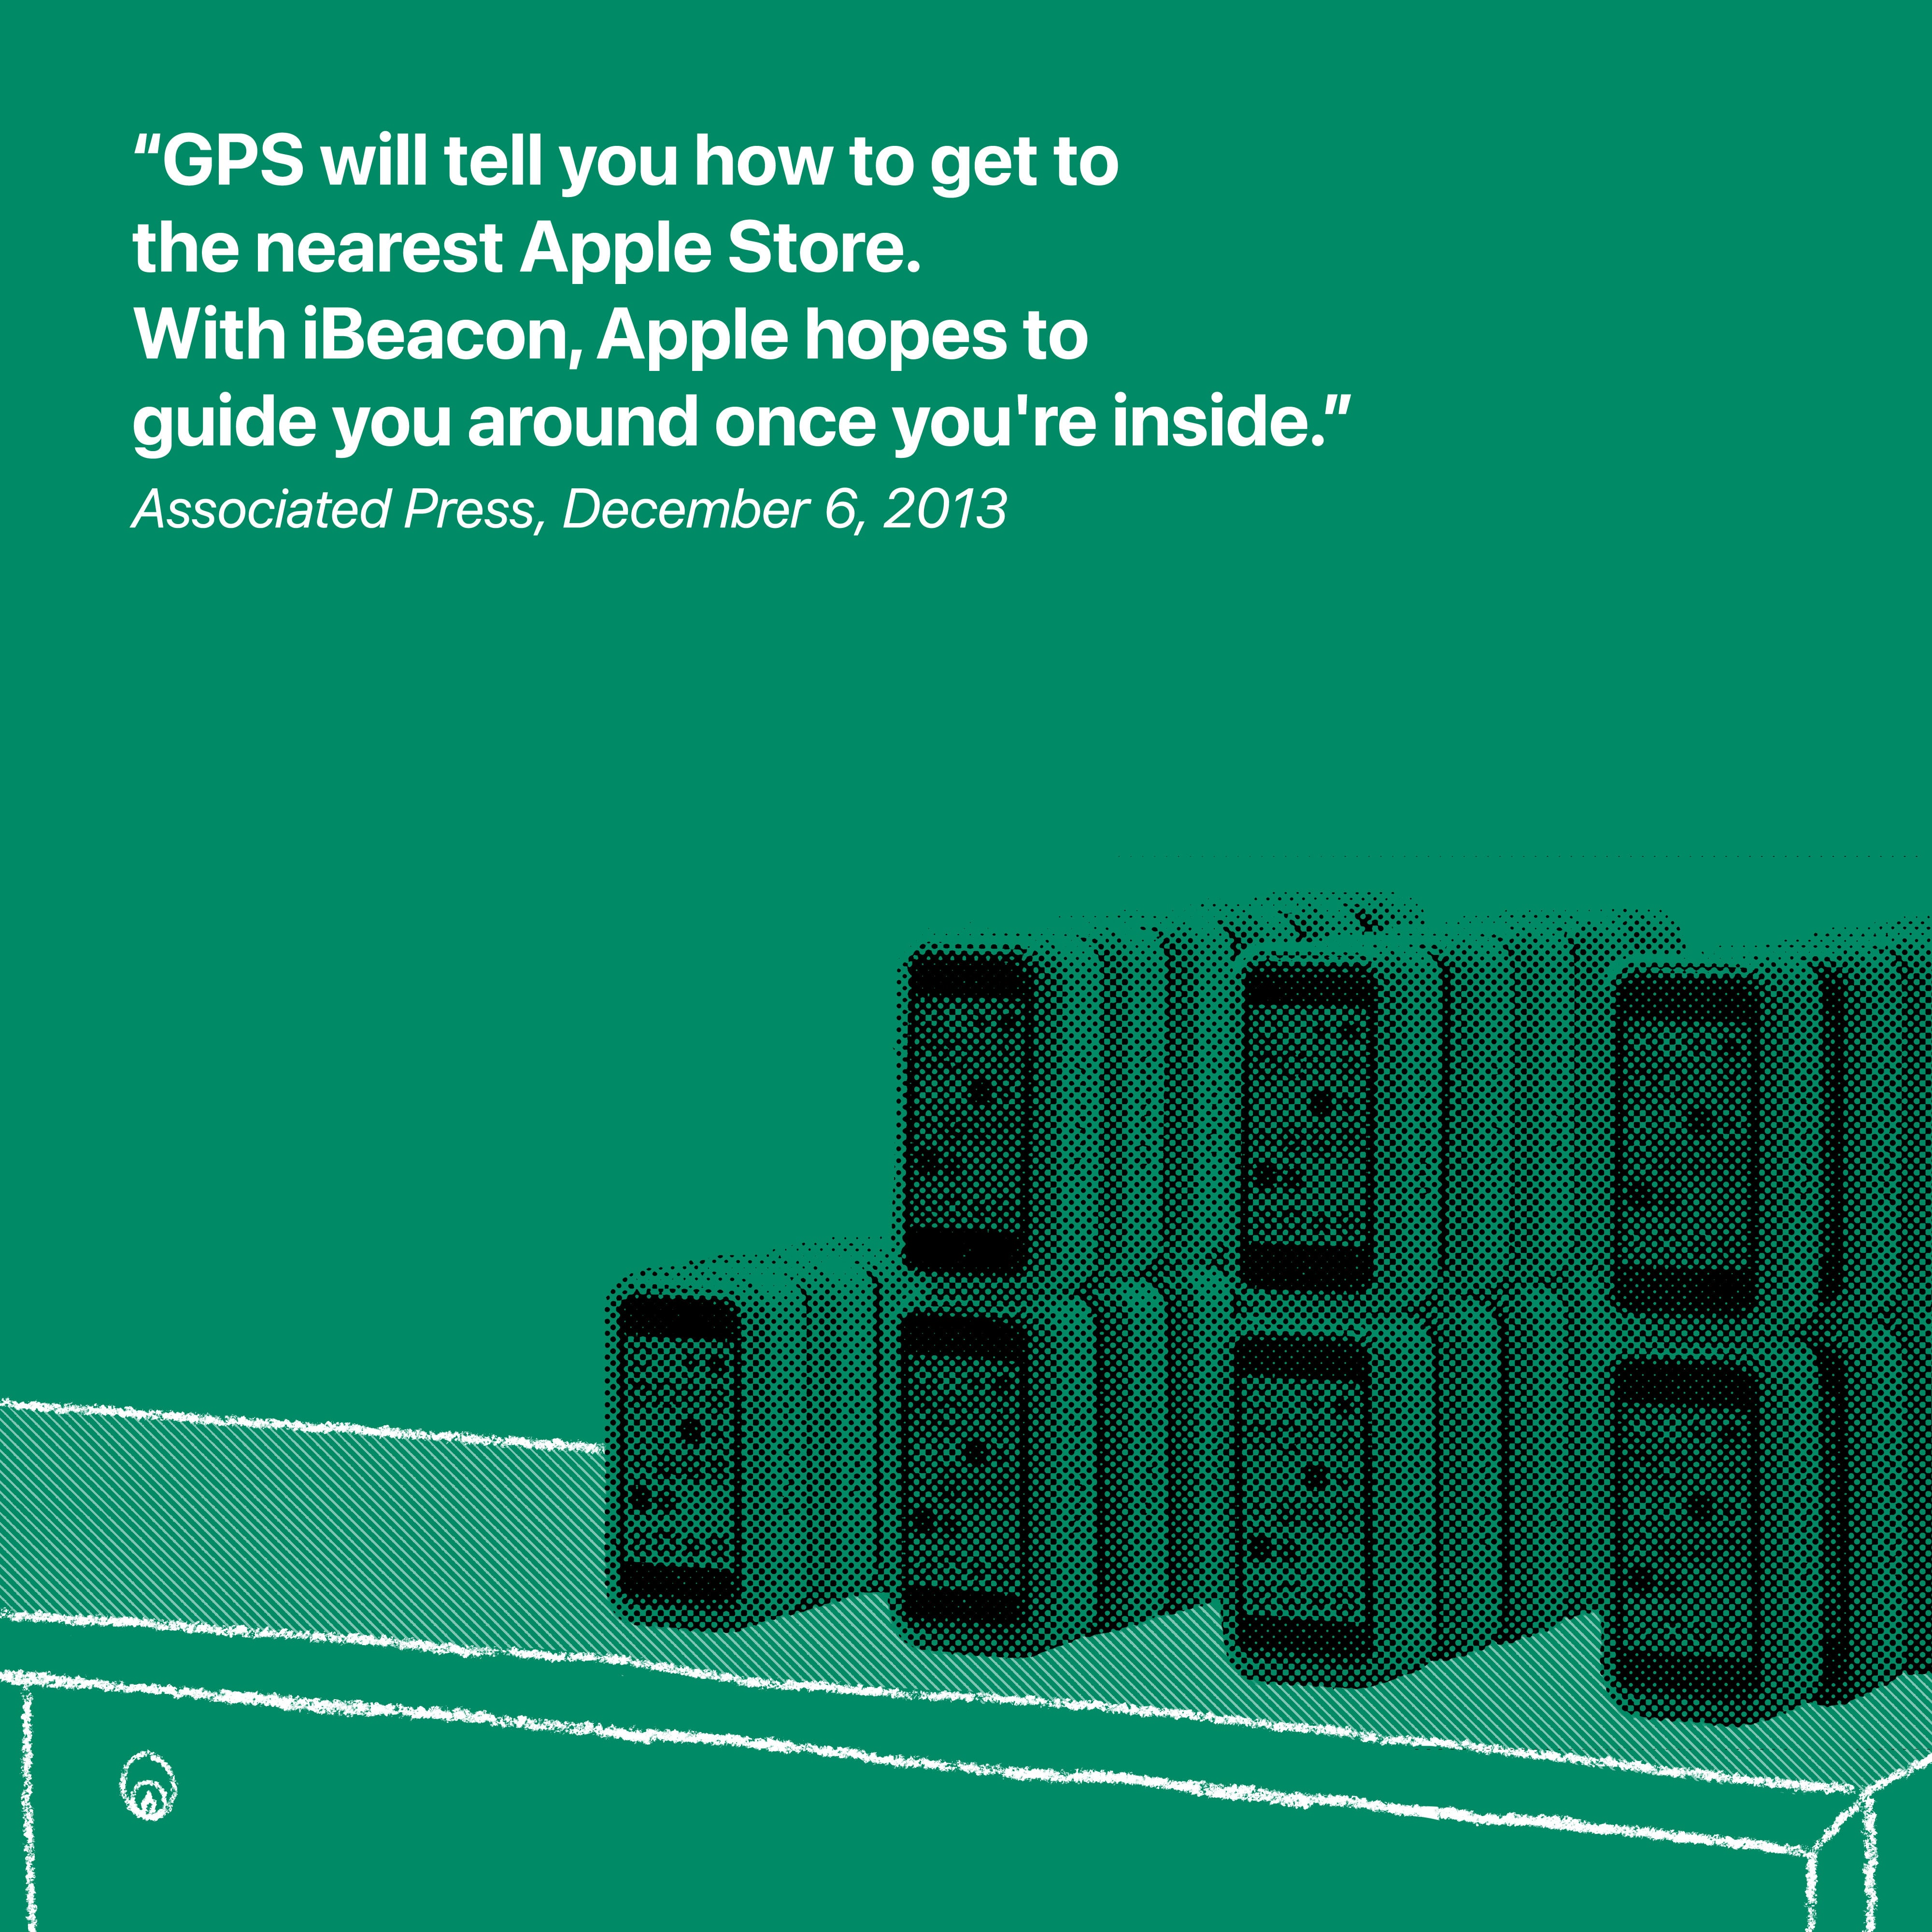 """""""GPS will tell you how to get to the nearest Apple Store. With iBeacon, Apple hopes to guide you around once you're inside."""" Associated Press, December 6, 2013"""